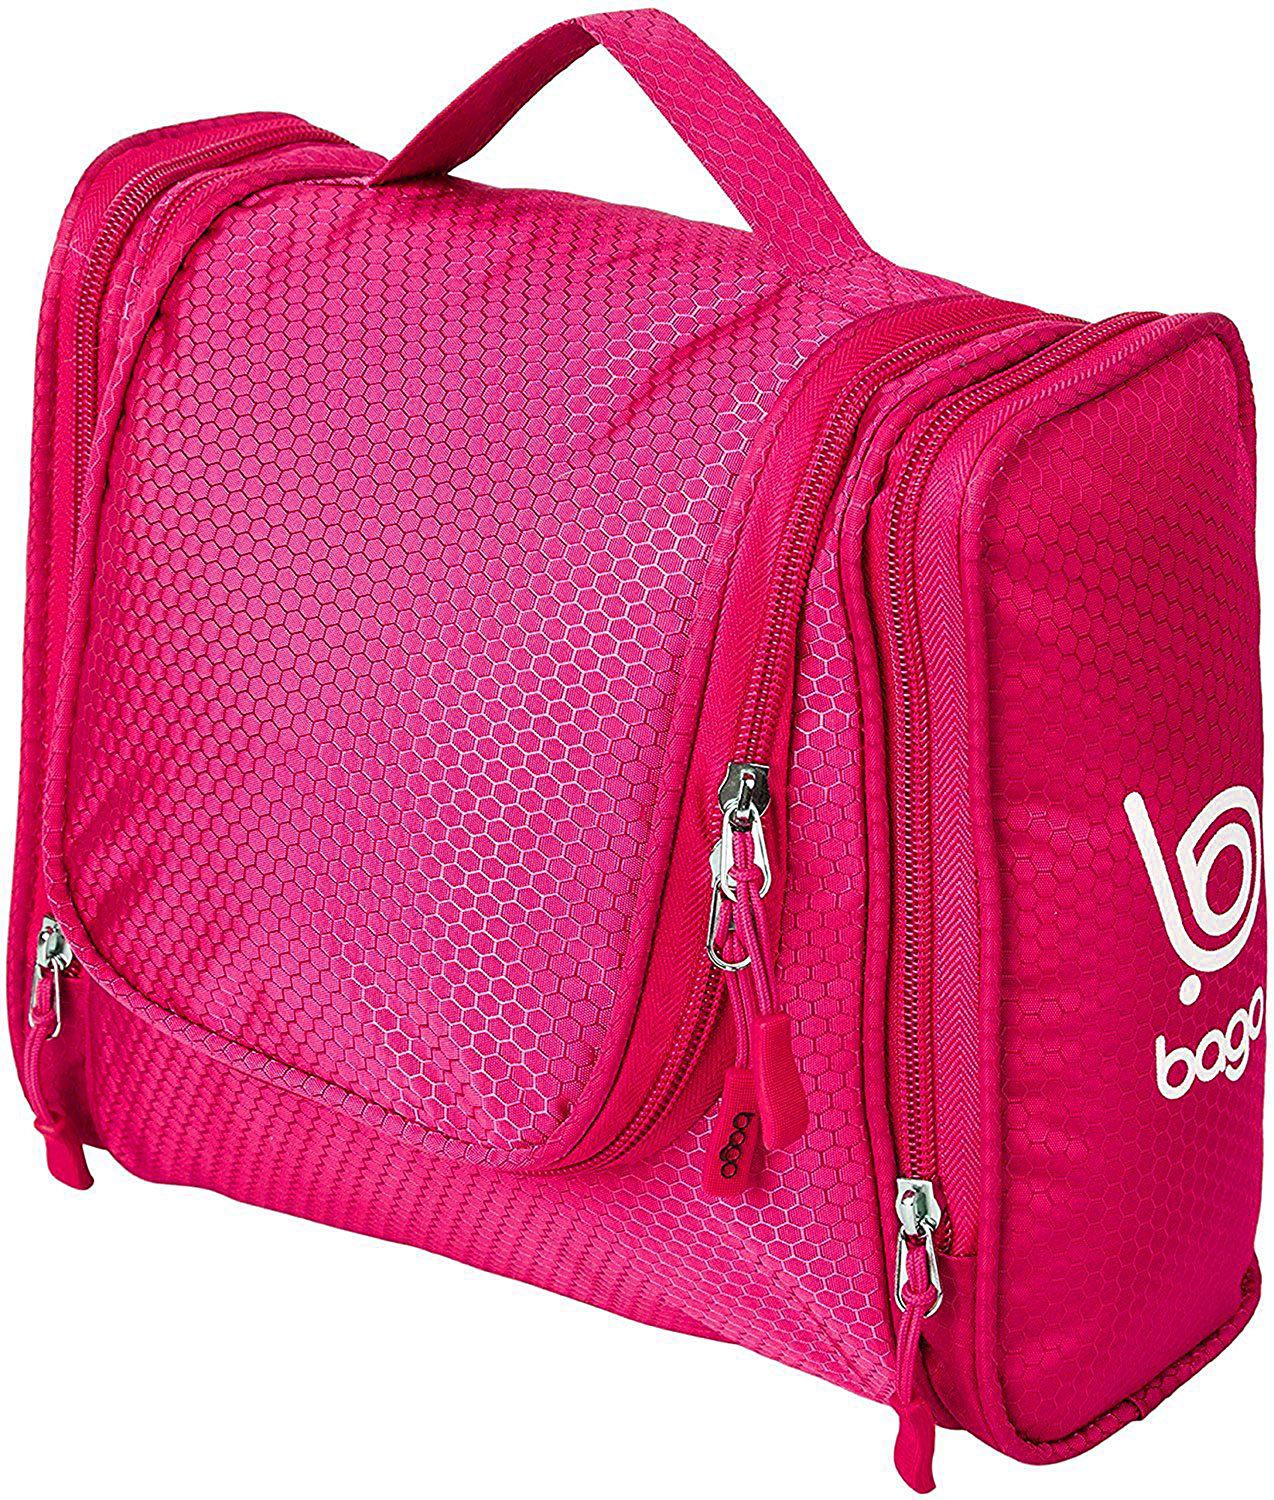 79755a28c9b0 The 7 Best Travel Makeup Bags of 2019